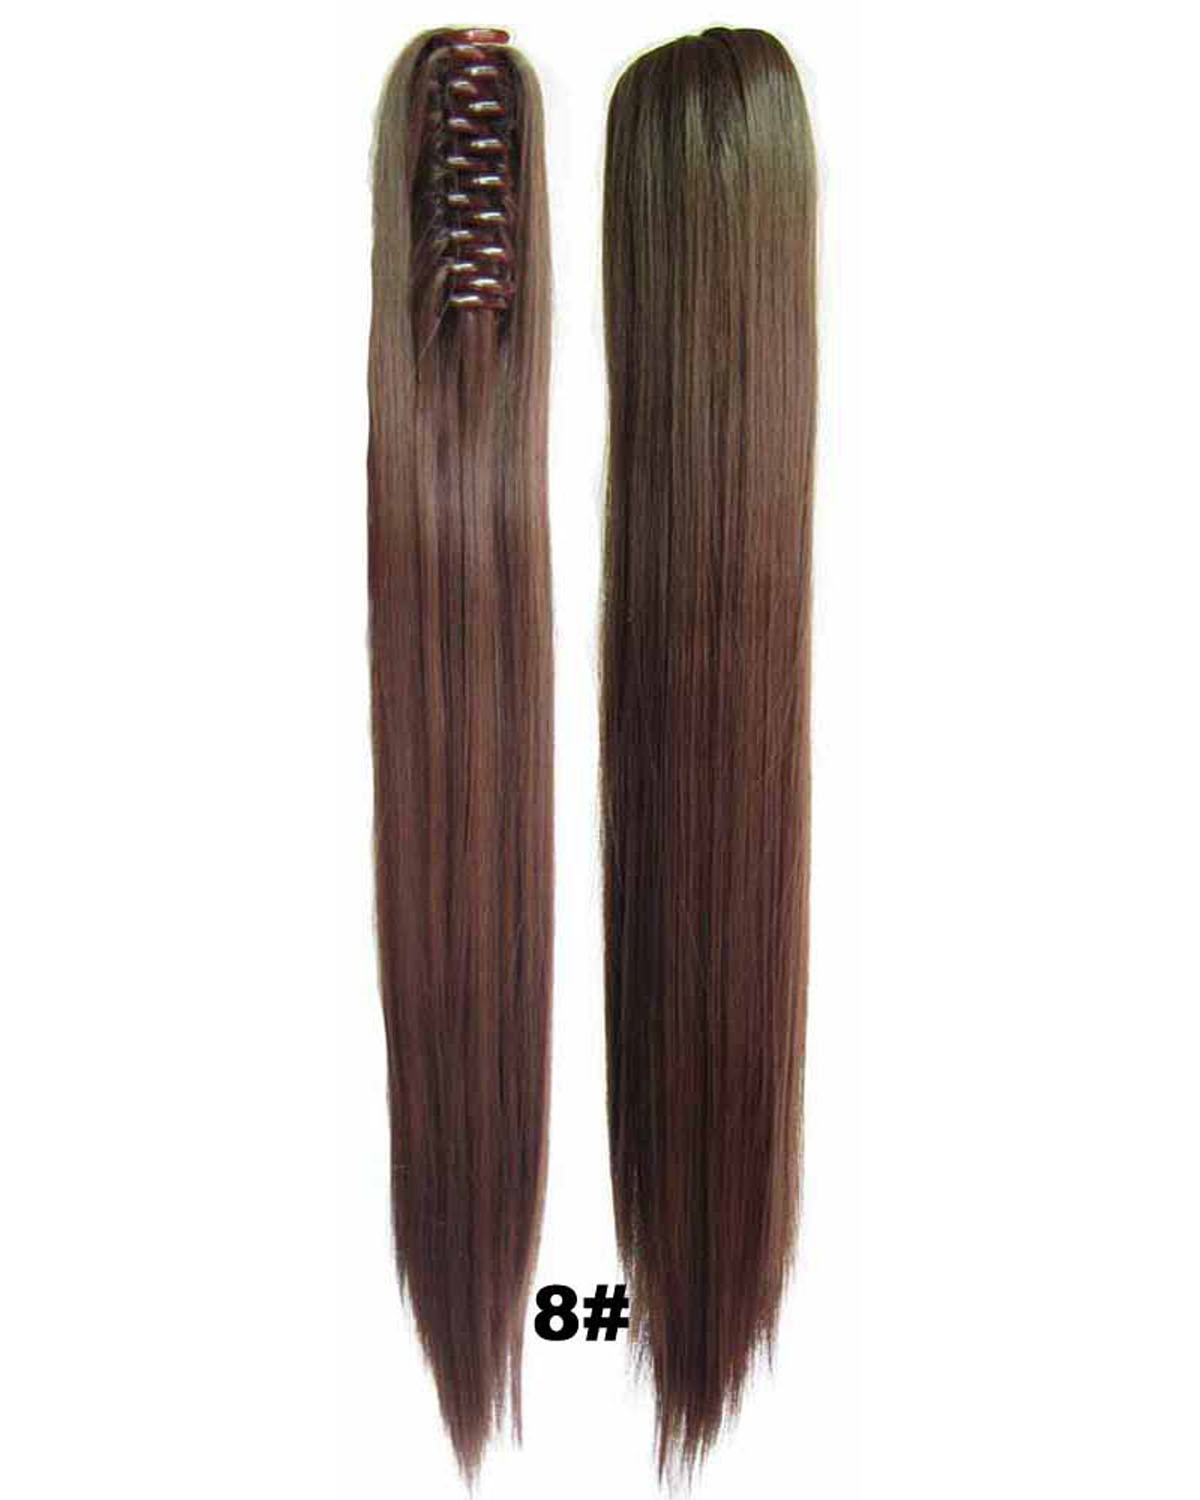 22 Inch Lady Straight and Long Claw Chip Synthetic Hair Ponytail 8#  Comfortable and Popular